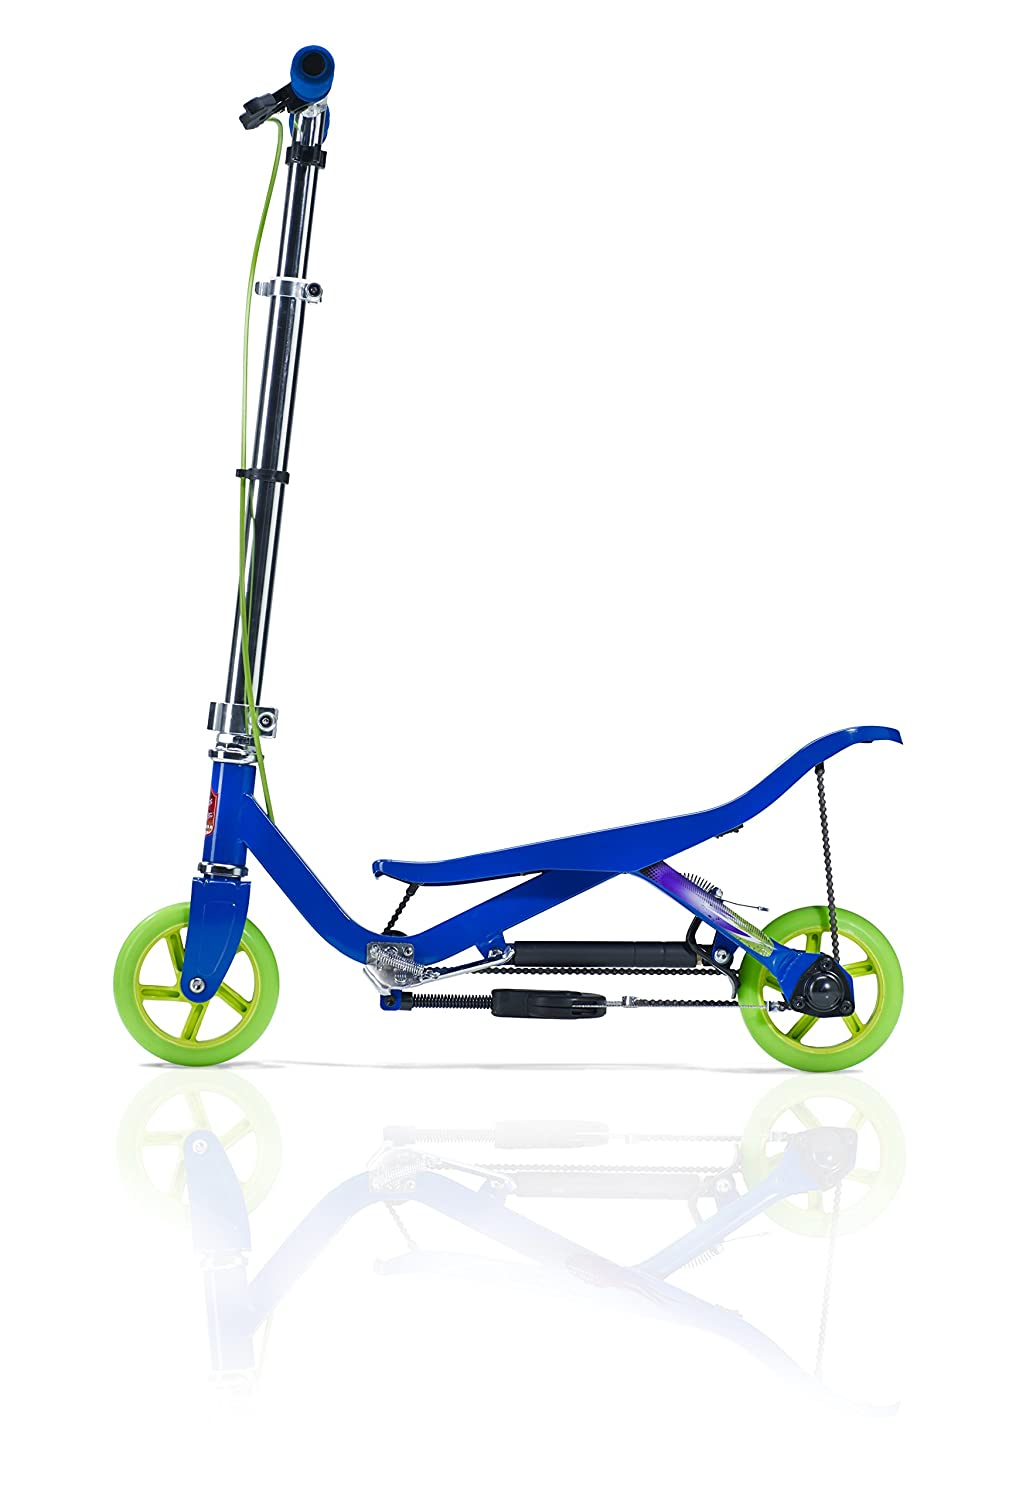 SpaceScooter Junior Push Board Teeter Totter Kids Scooter with Brake, Air Suspension Compact Fold – Blue